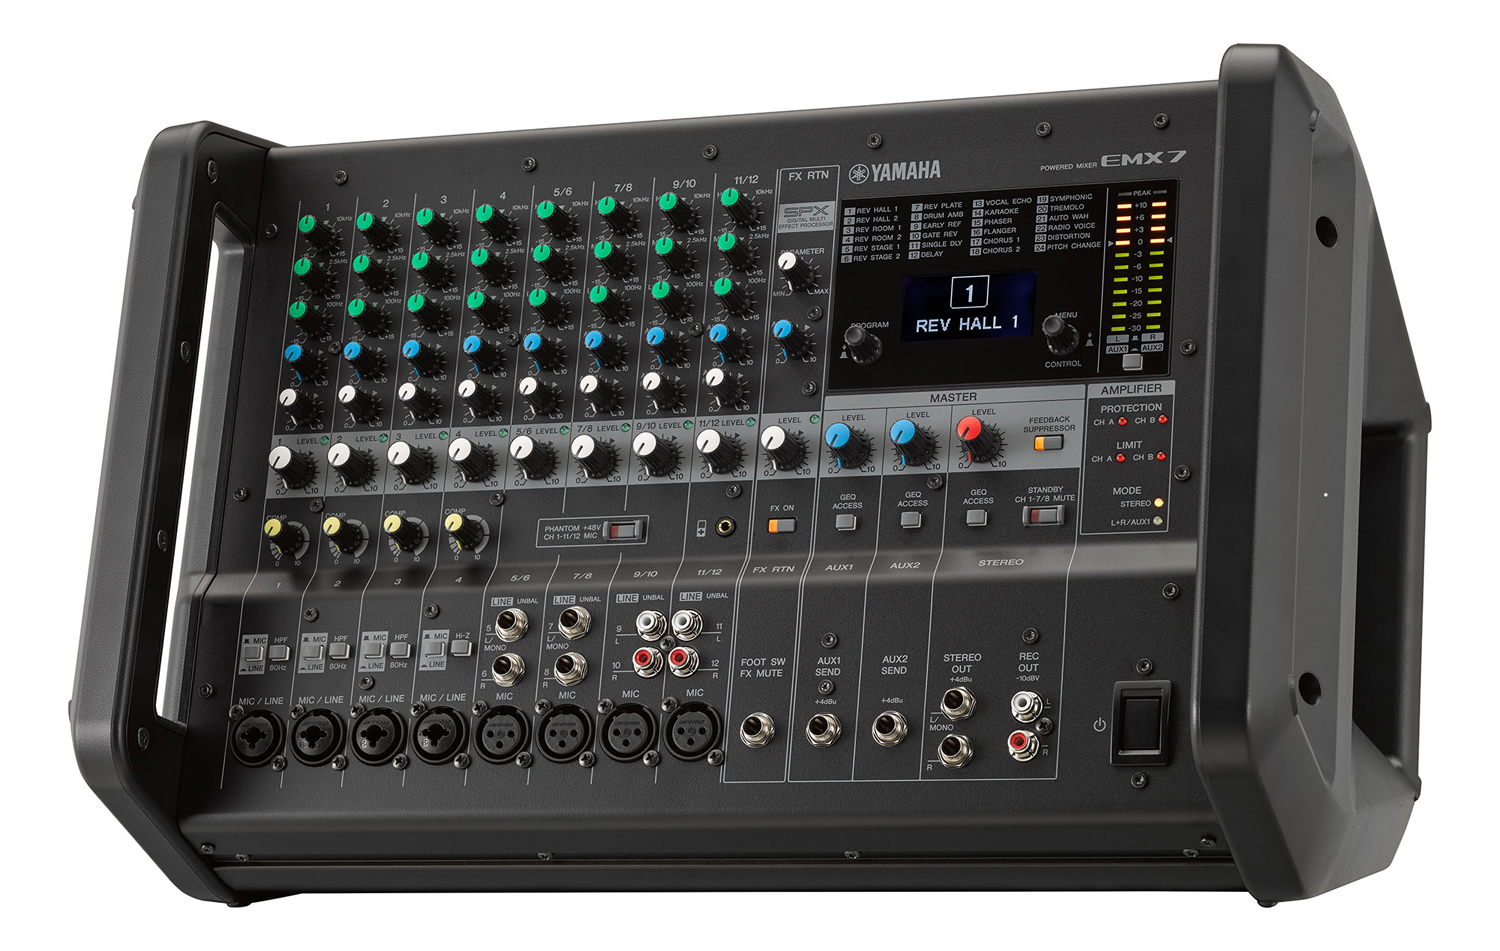 yamaha emx312sc powered mixer manual